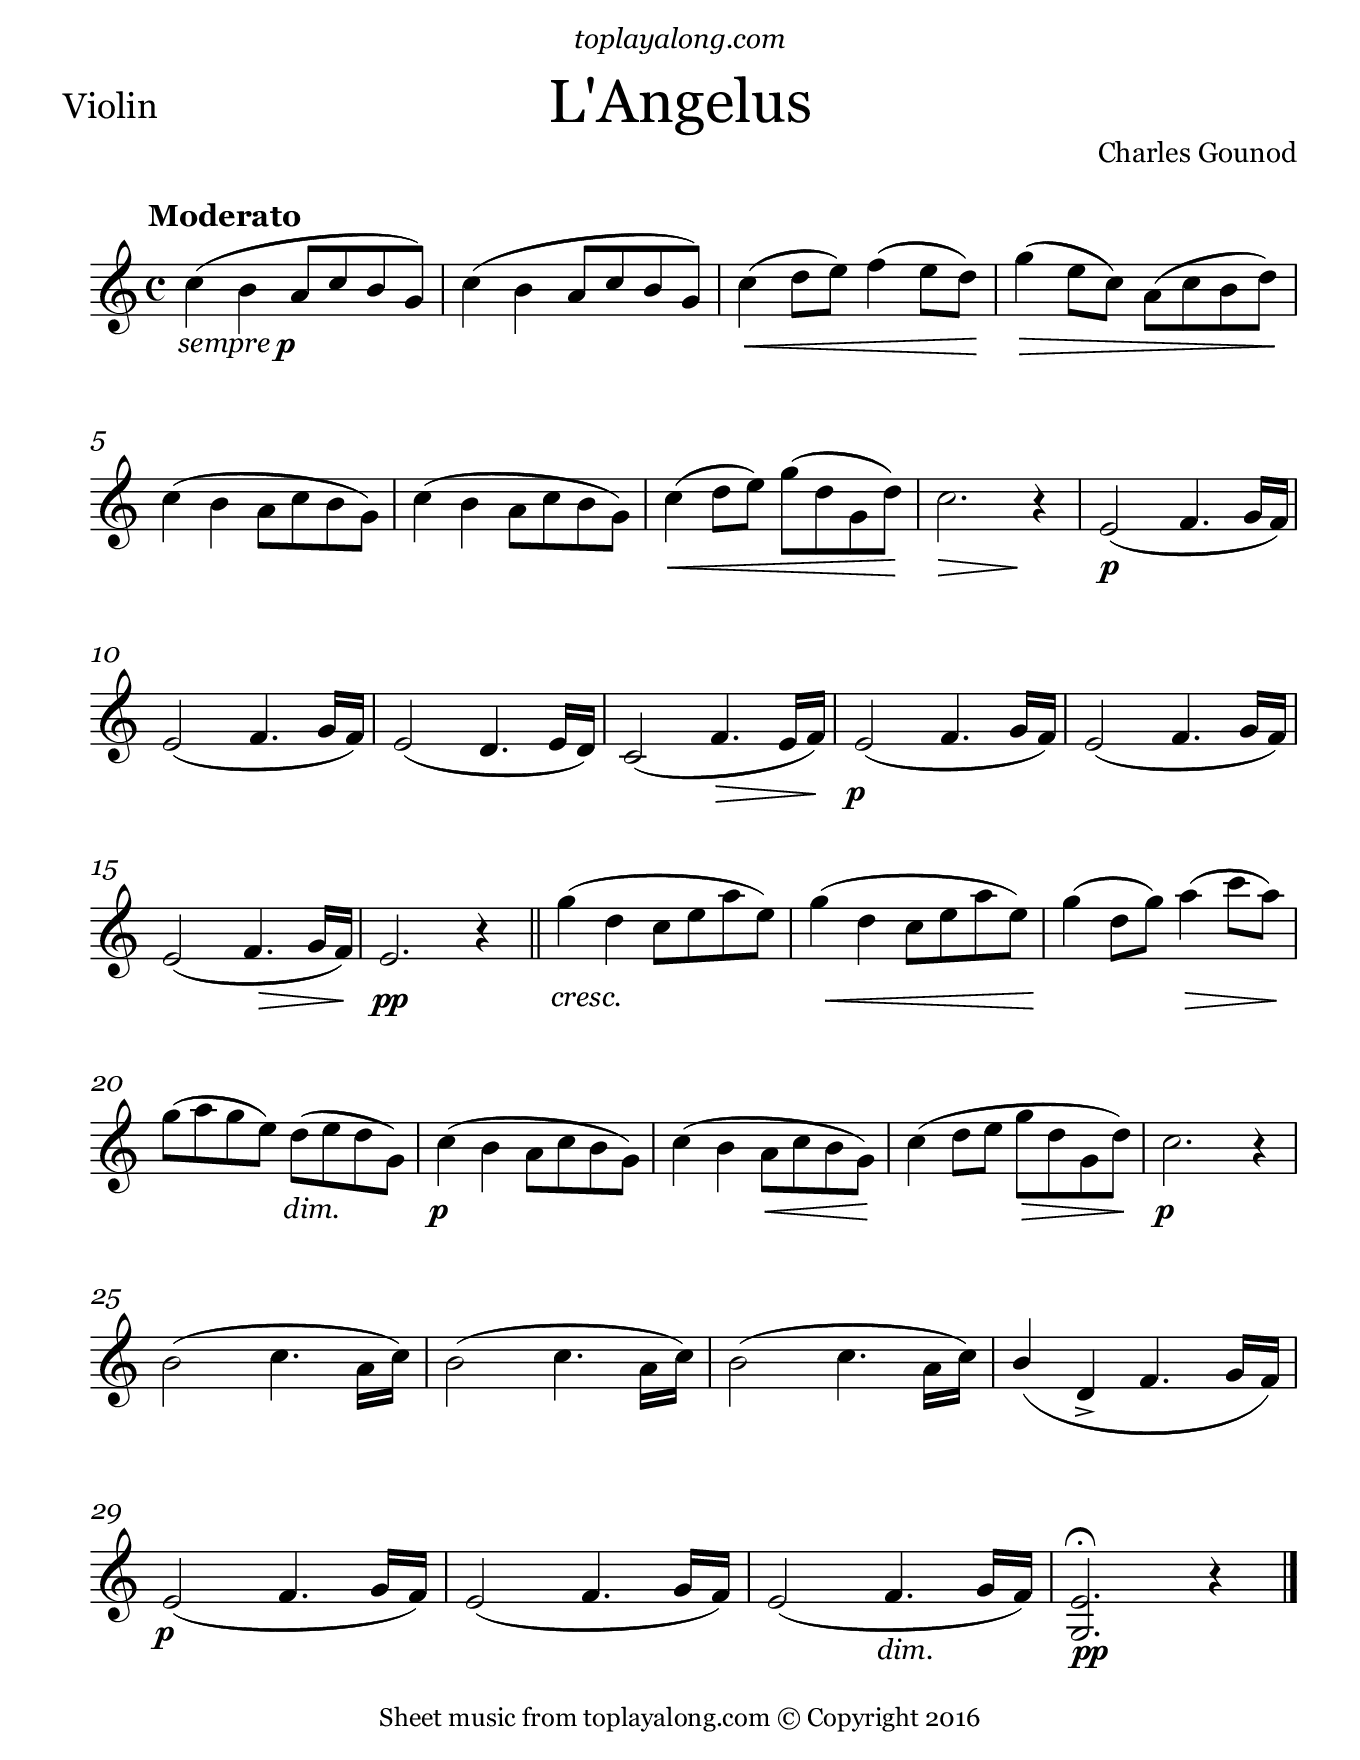 L'Angelus by Gounod. Sheet music for Violin, page 1.